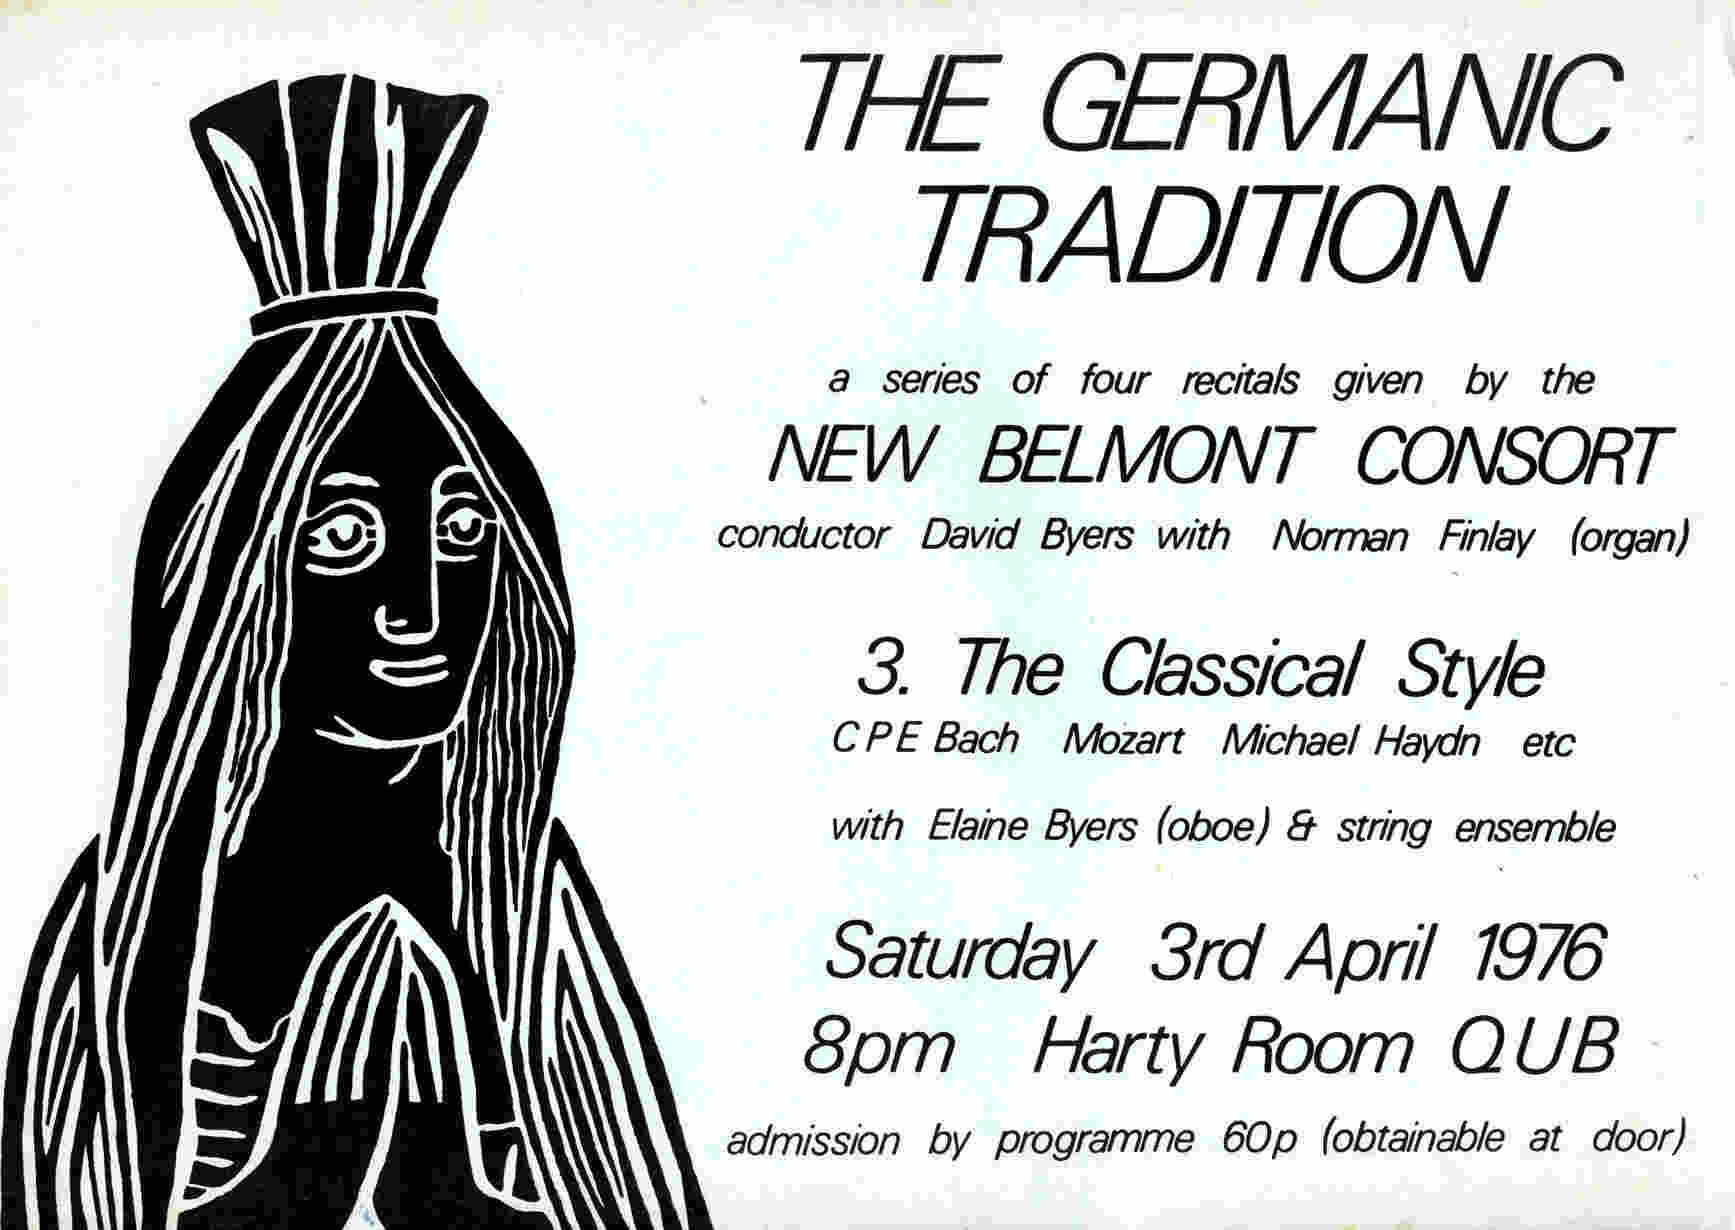 New Belmont Consort Germanic 3